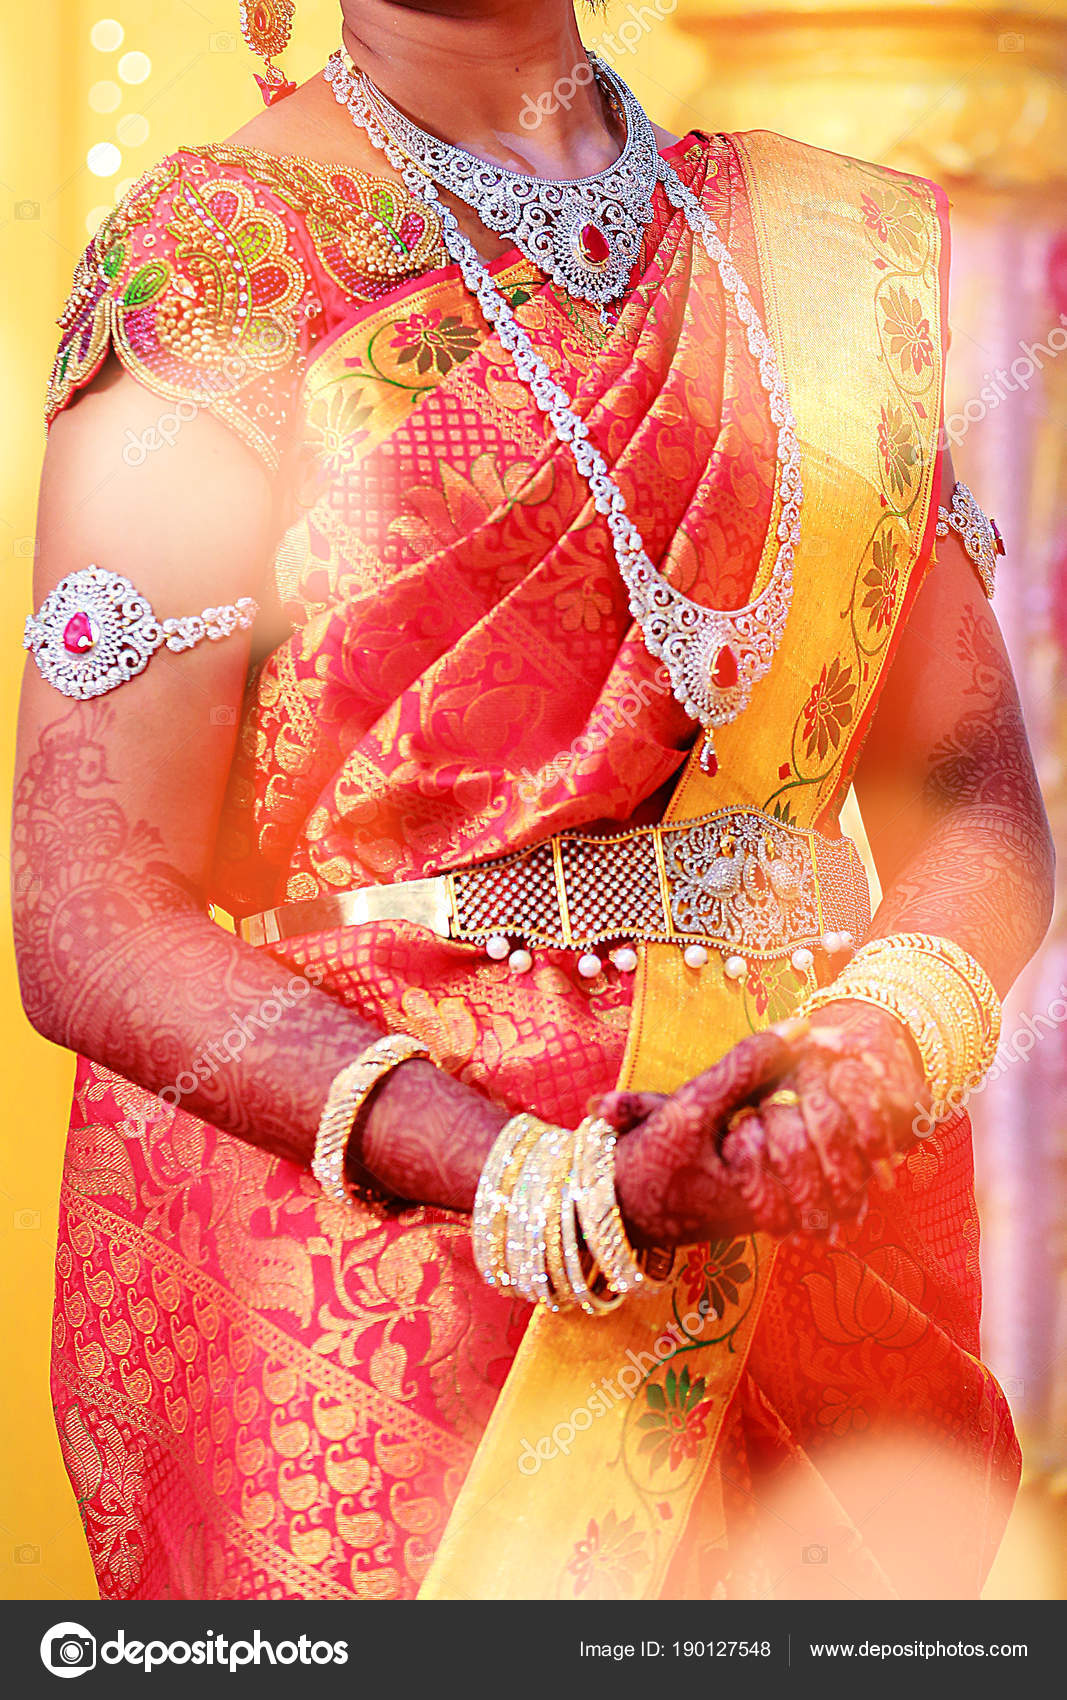 5f6265e211 Traditional Young bride in wedding dress, South Indian wedding rituals,  ceremony — Stock Photo